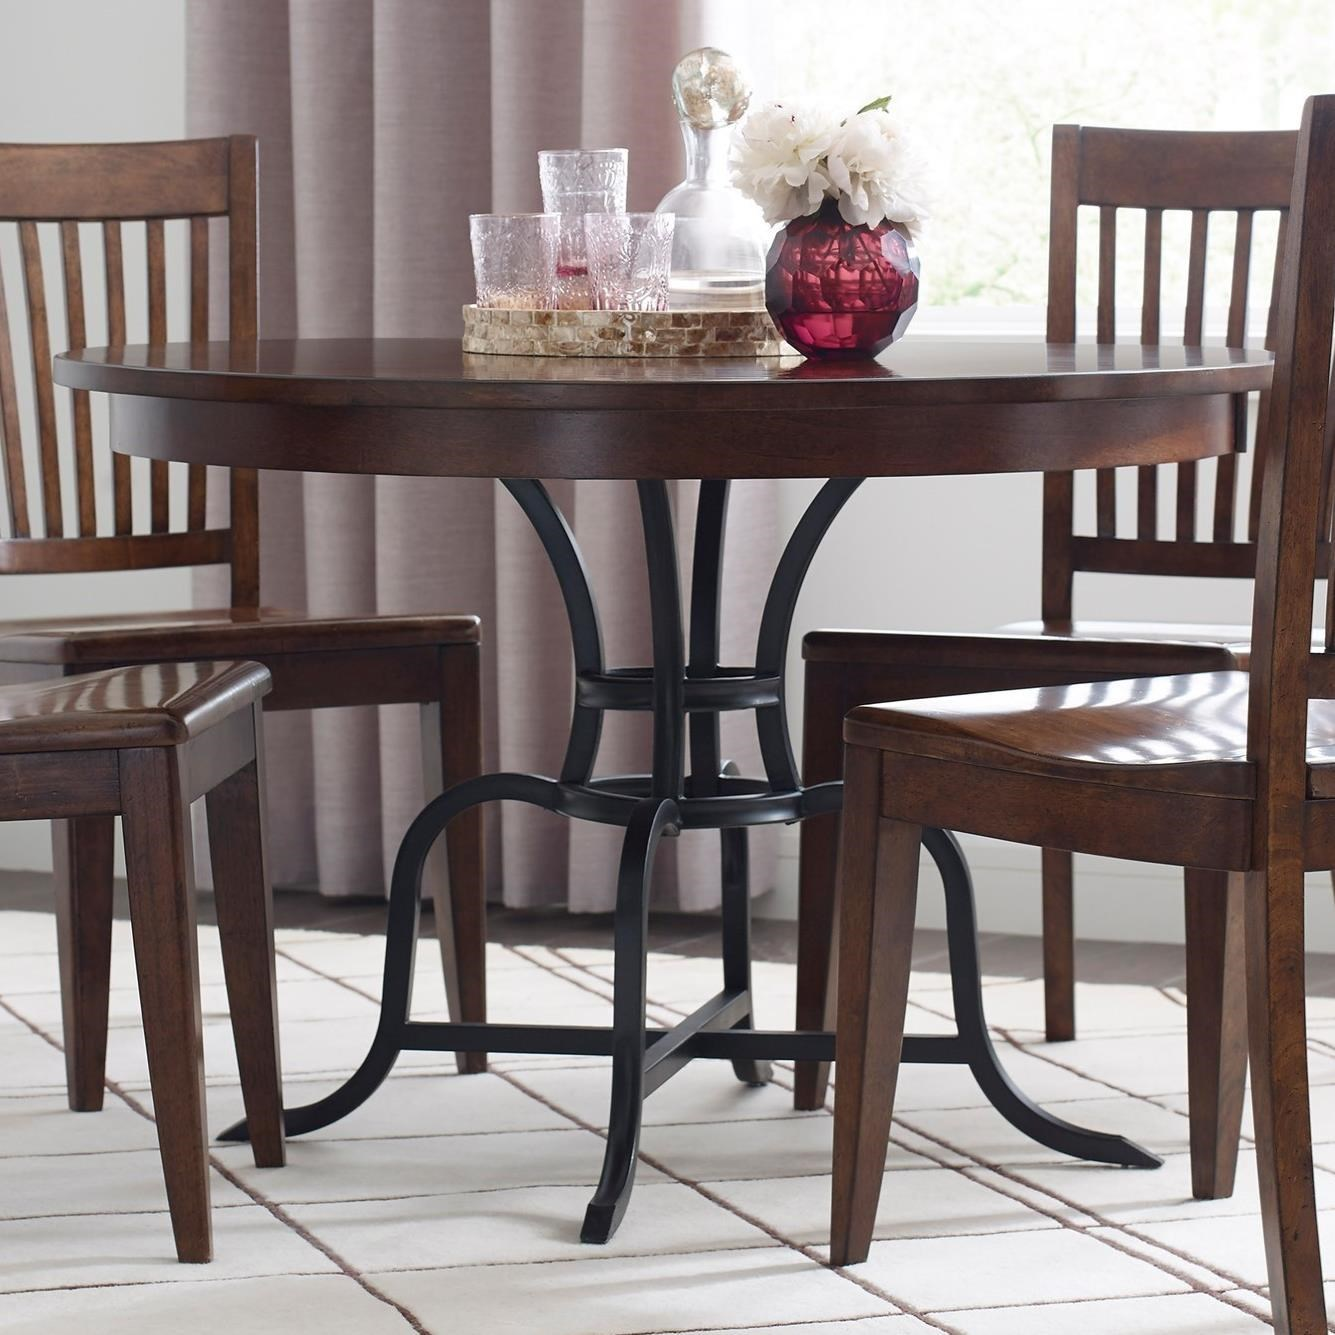 Heavy Duty Dining Room Chairs The Nook 44